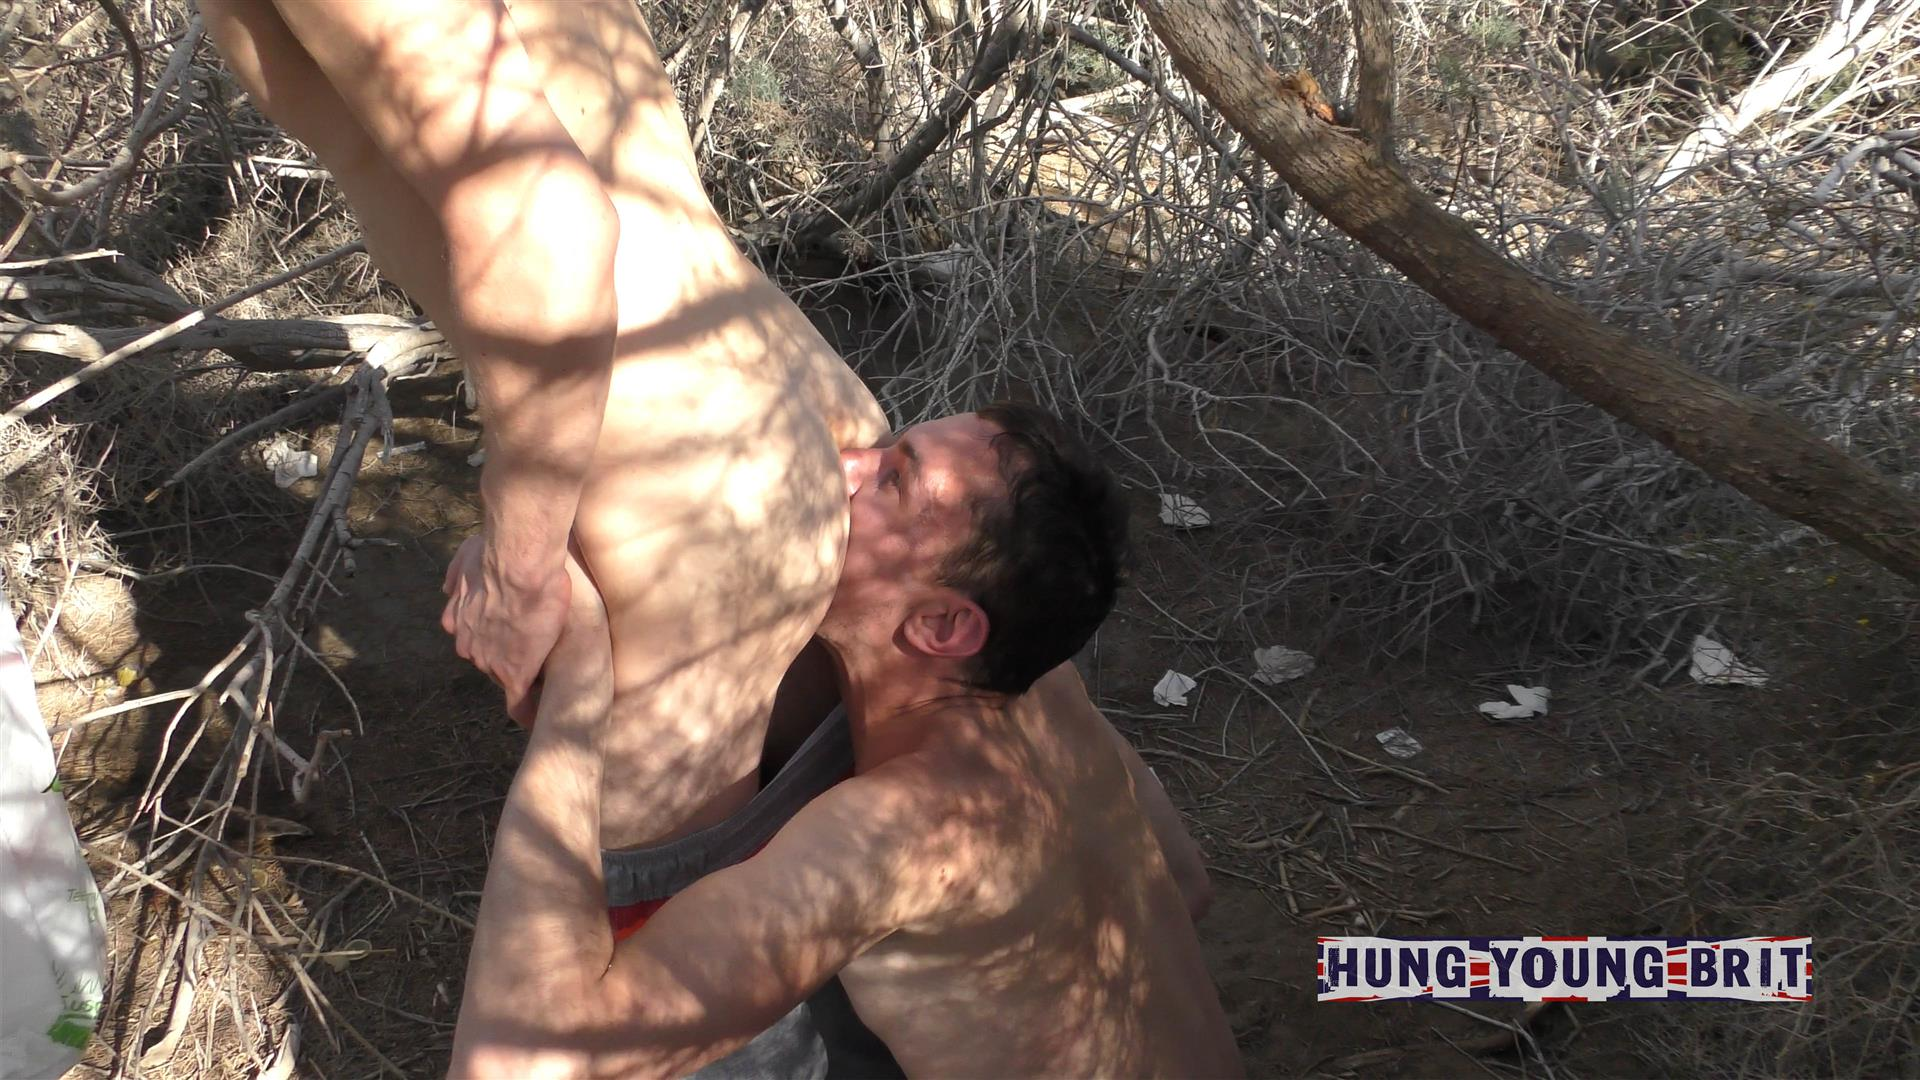 Hung-Young-Brit-HungYoungBrit-Eating-50-Loads-of-Cum-Amatuer-Gay-Cruising-Sex-09 Sucking 50 Cocks And Eating 50 Loads Of Cum On The Gran Canaria Island